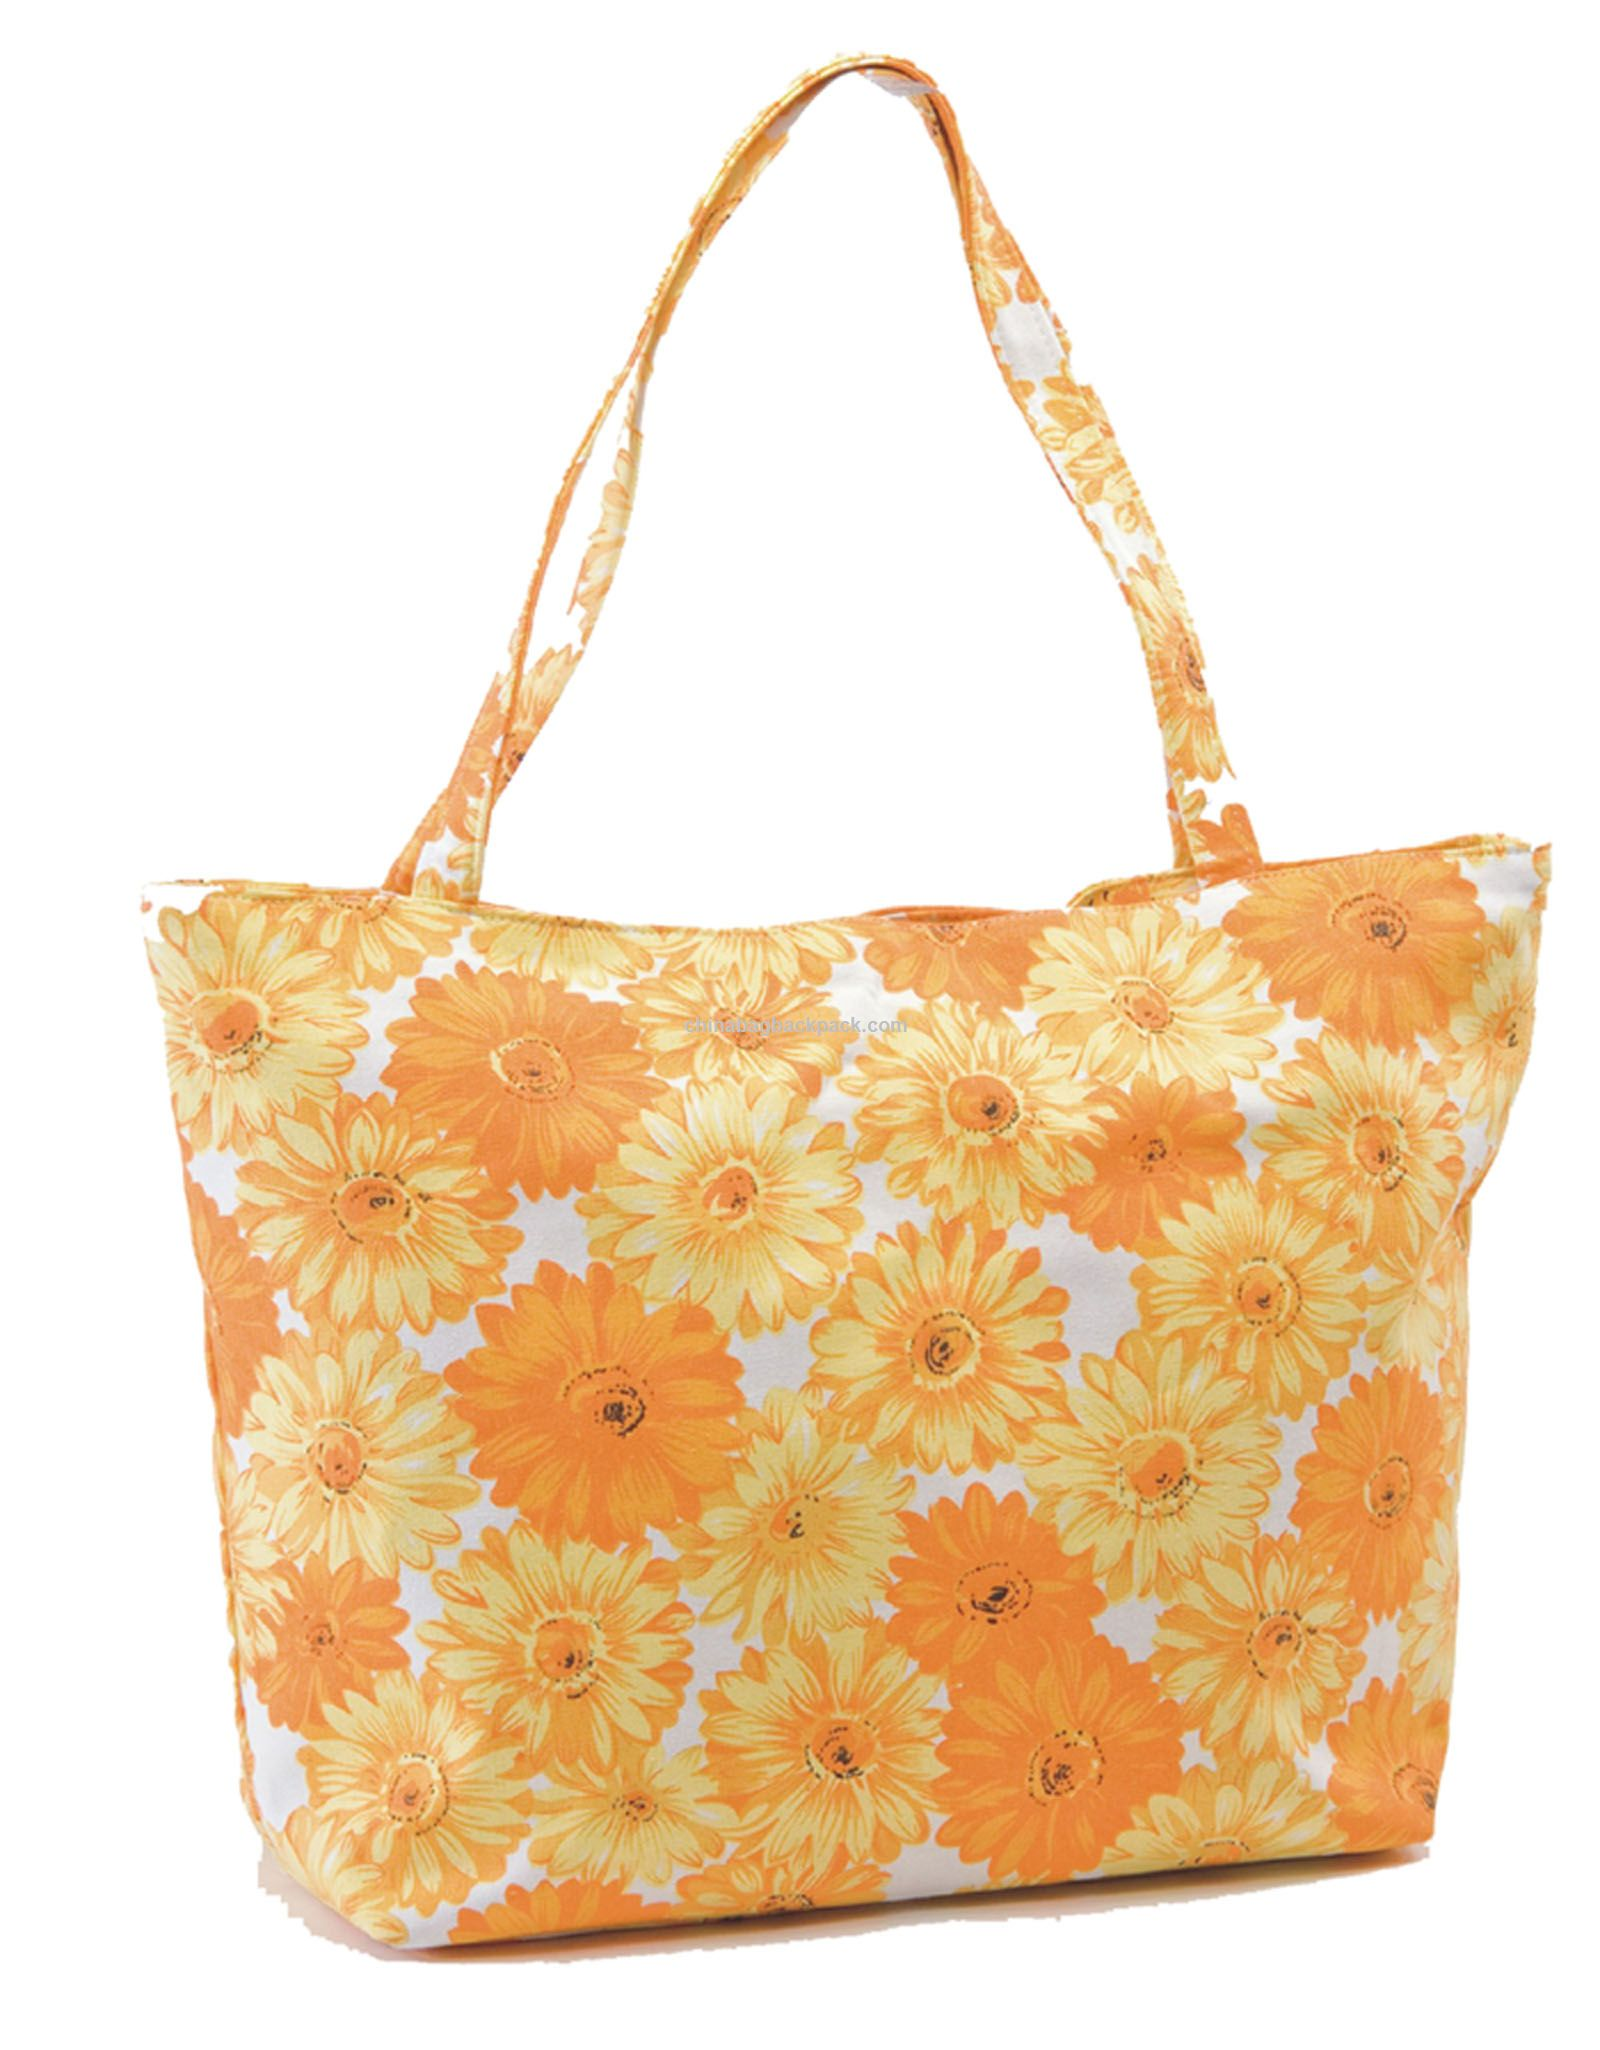 Handbags Tote Bag Beach Bag From Chinese Bag Exporter and Supplier